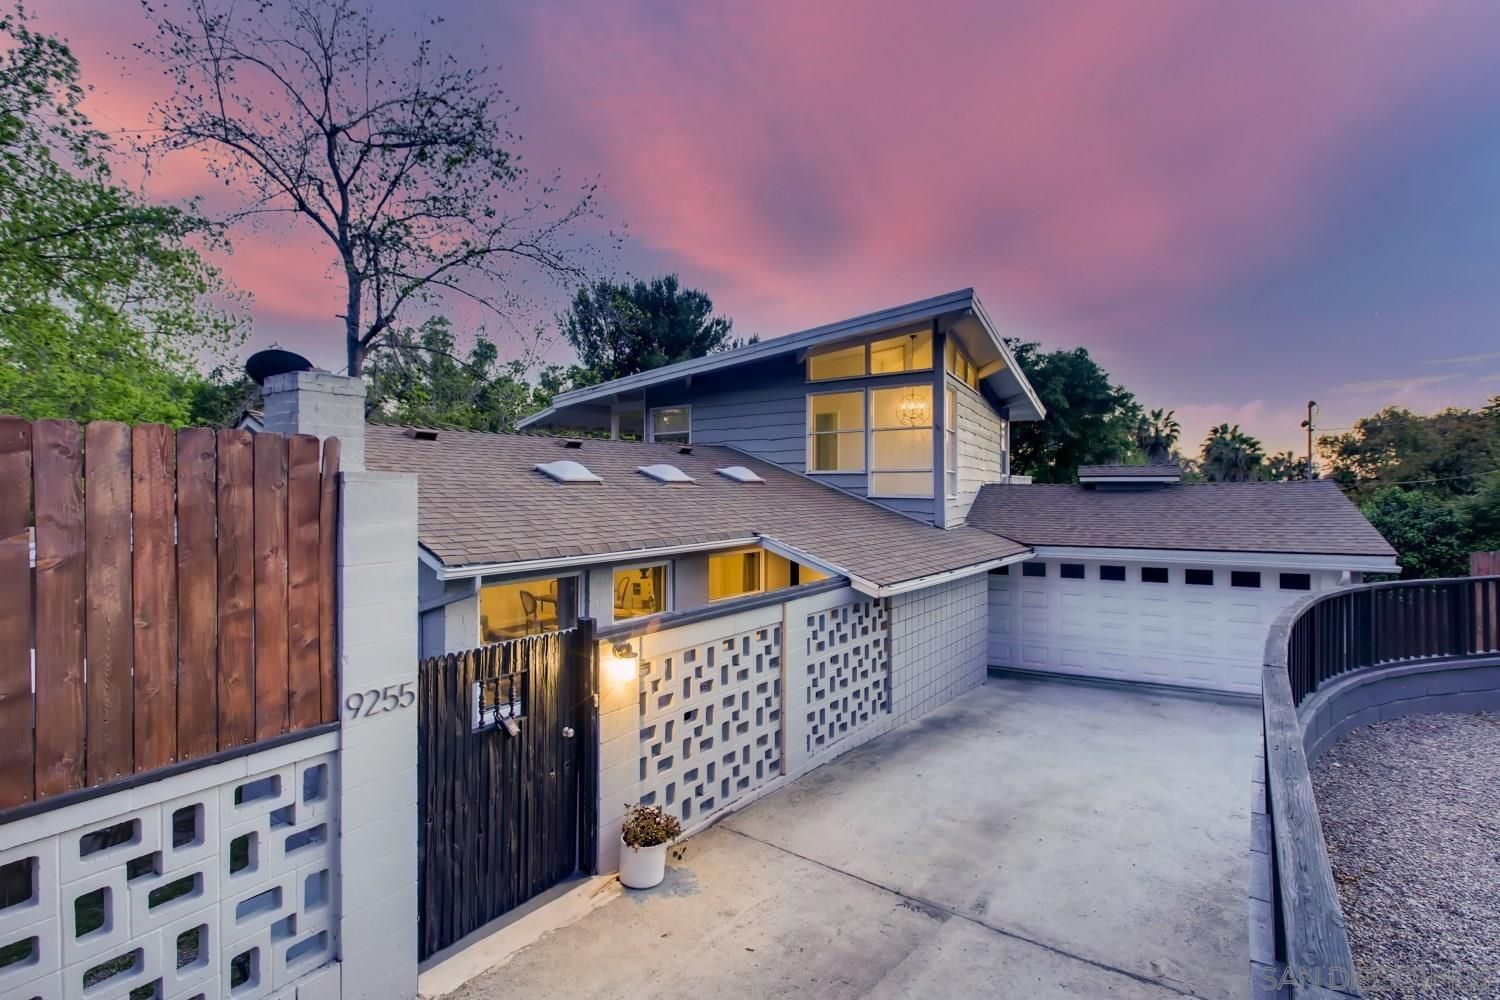 Main Photo: MOUNT HELIX House for sale : 5 bedrooms : 9255 Mollywoods Avenue in La Mesa